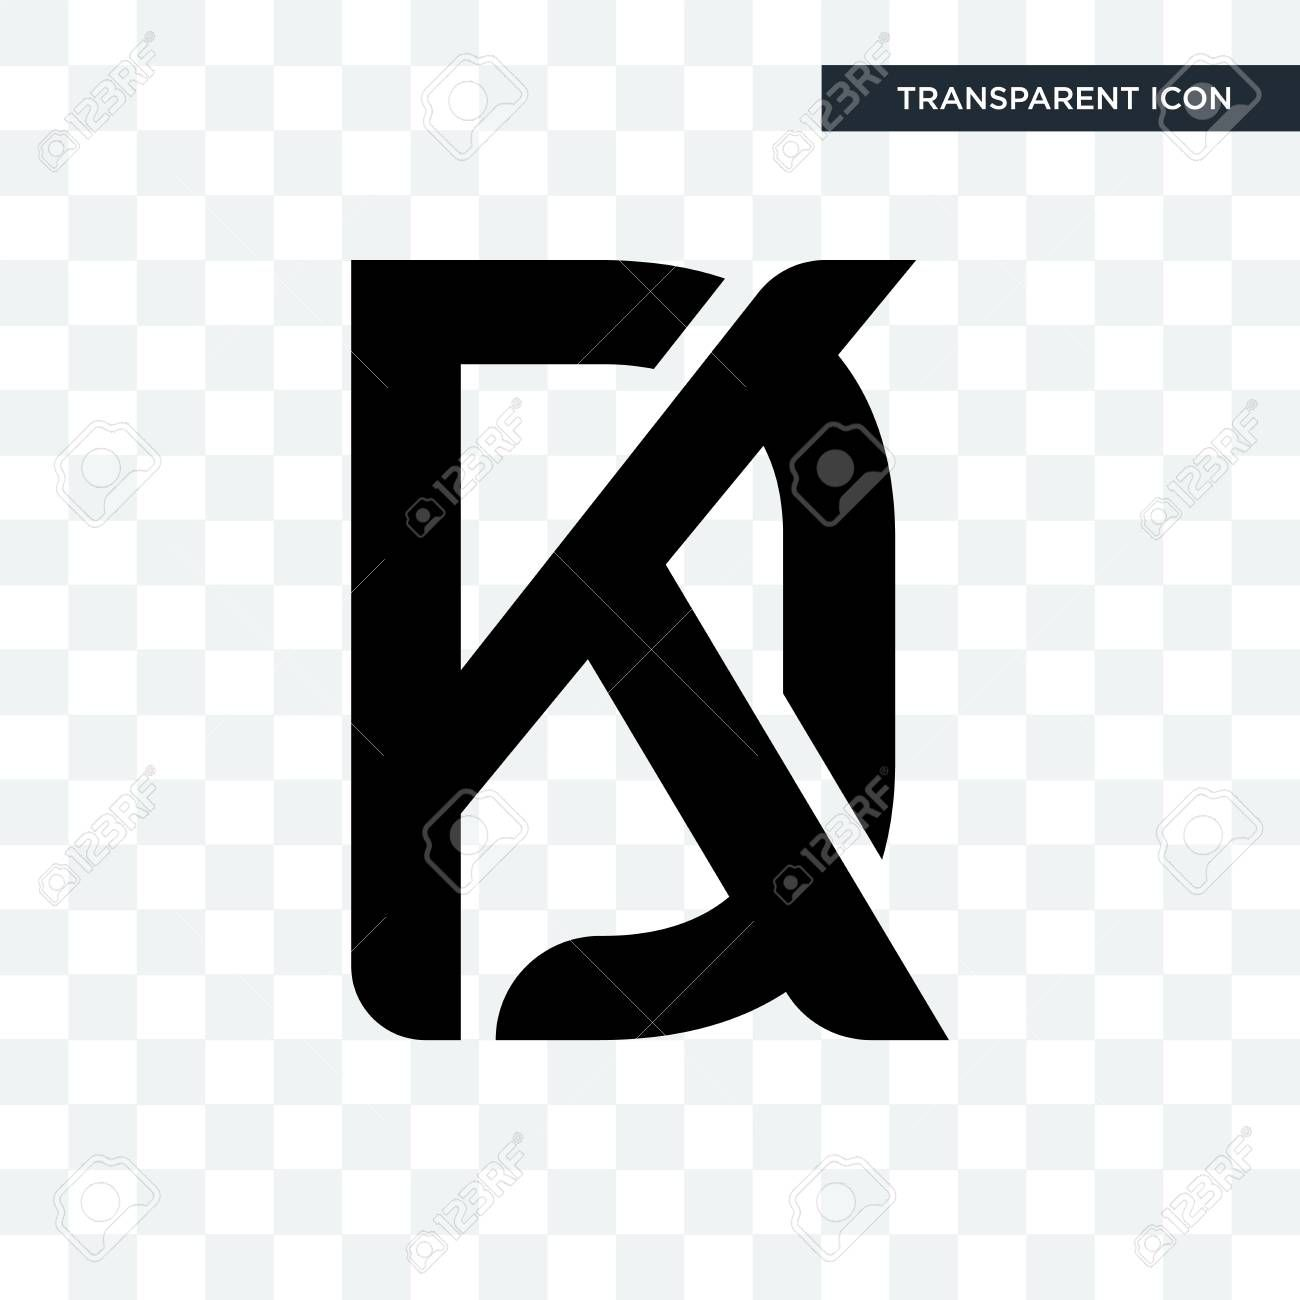 Kd Vector Icon Isolated On Transparent Background Kd Logo Concept Affiliate Icon Isolated Kd Logo Concept Floral Illustrations Transparent Background